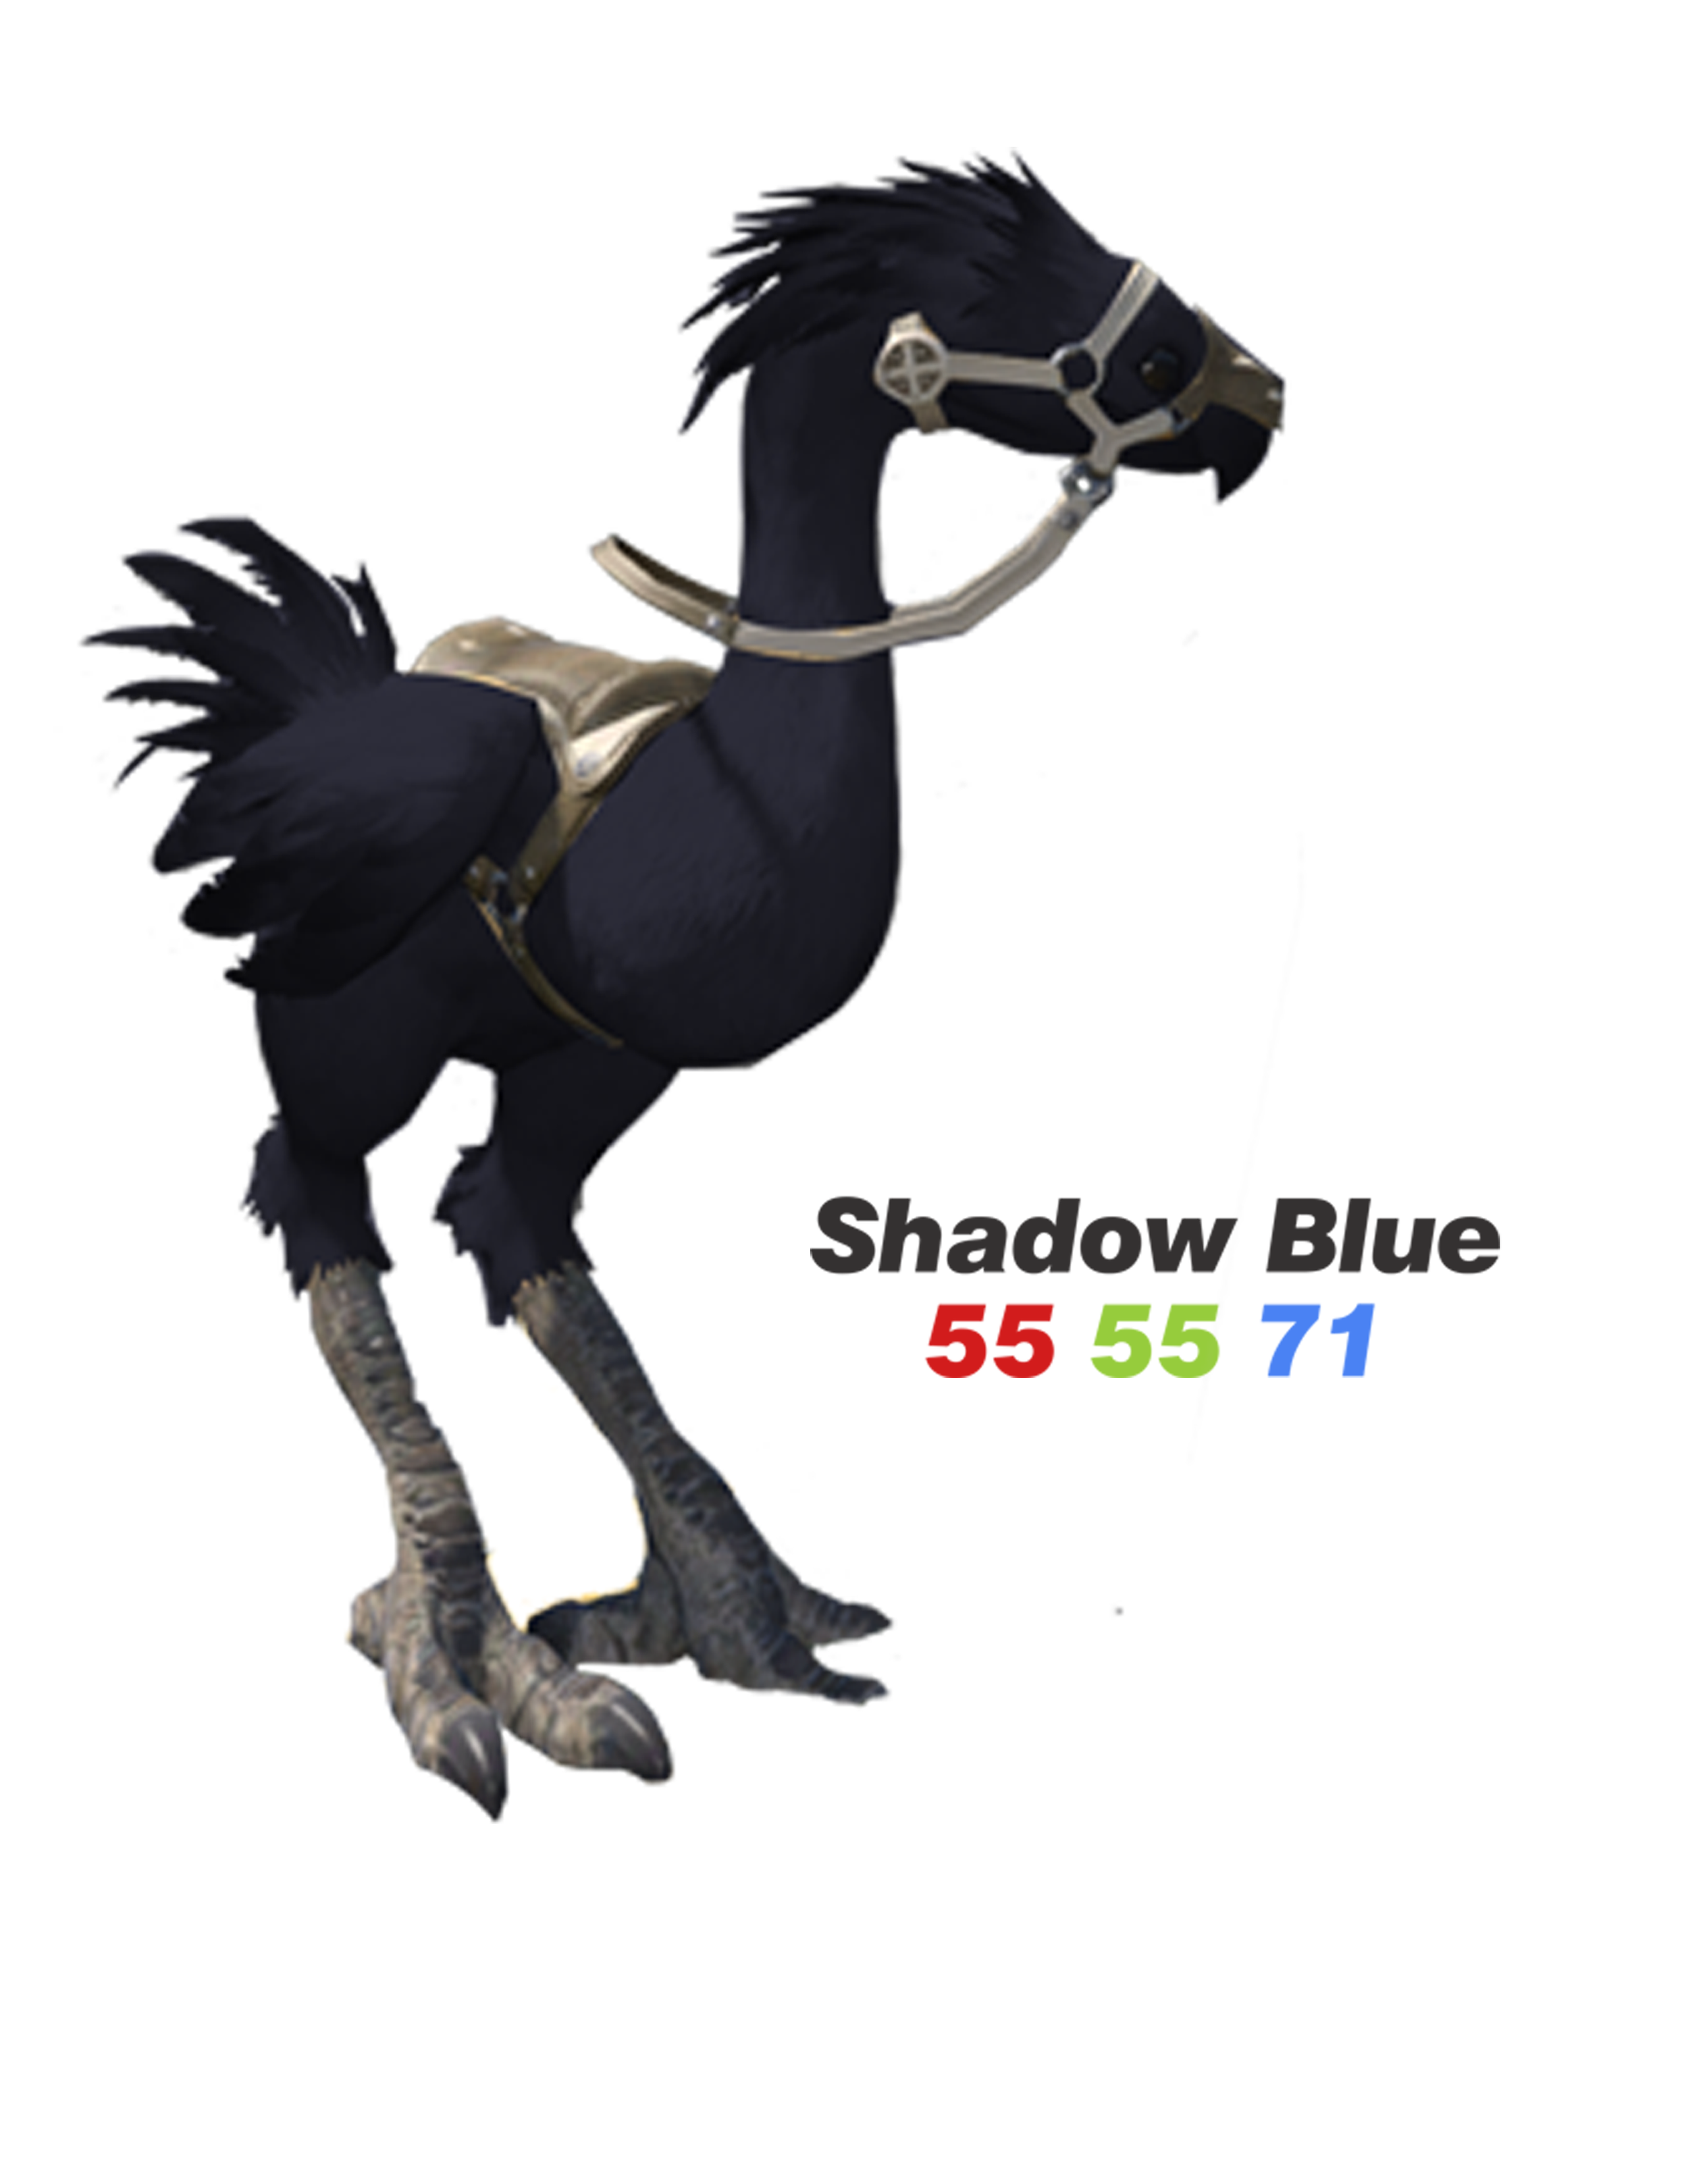 016Shadow.png